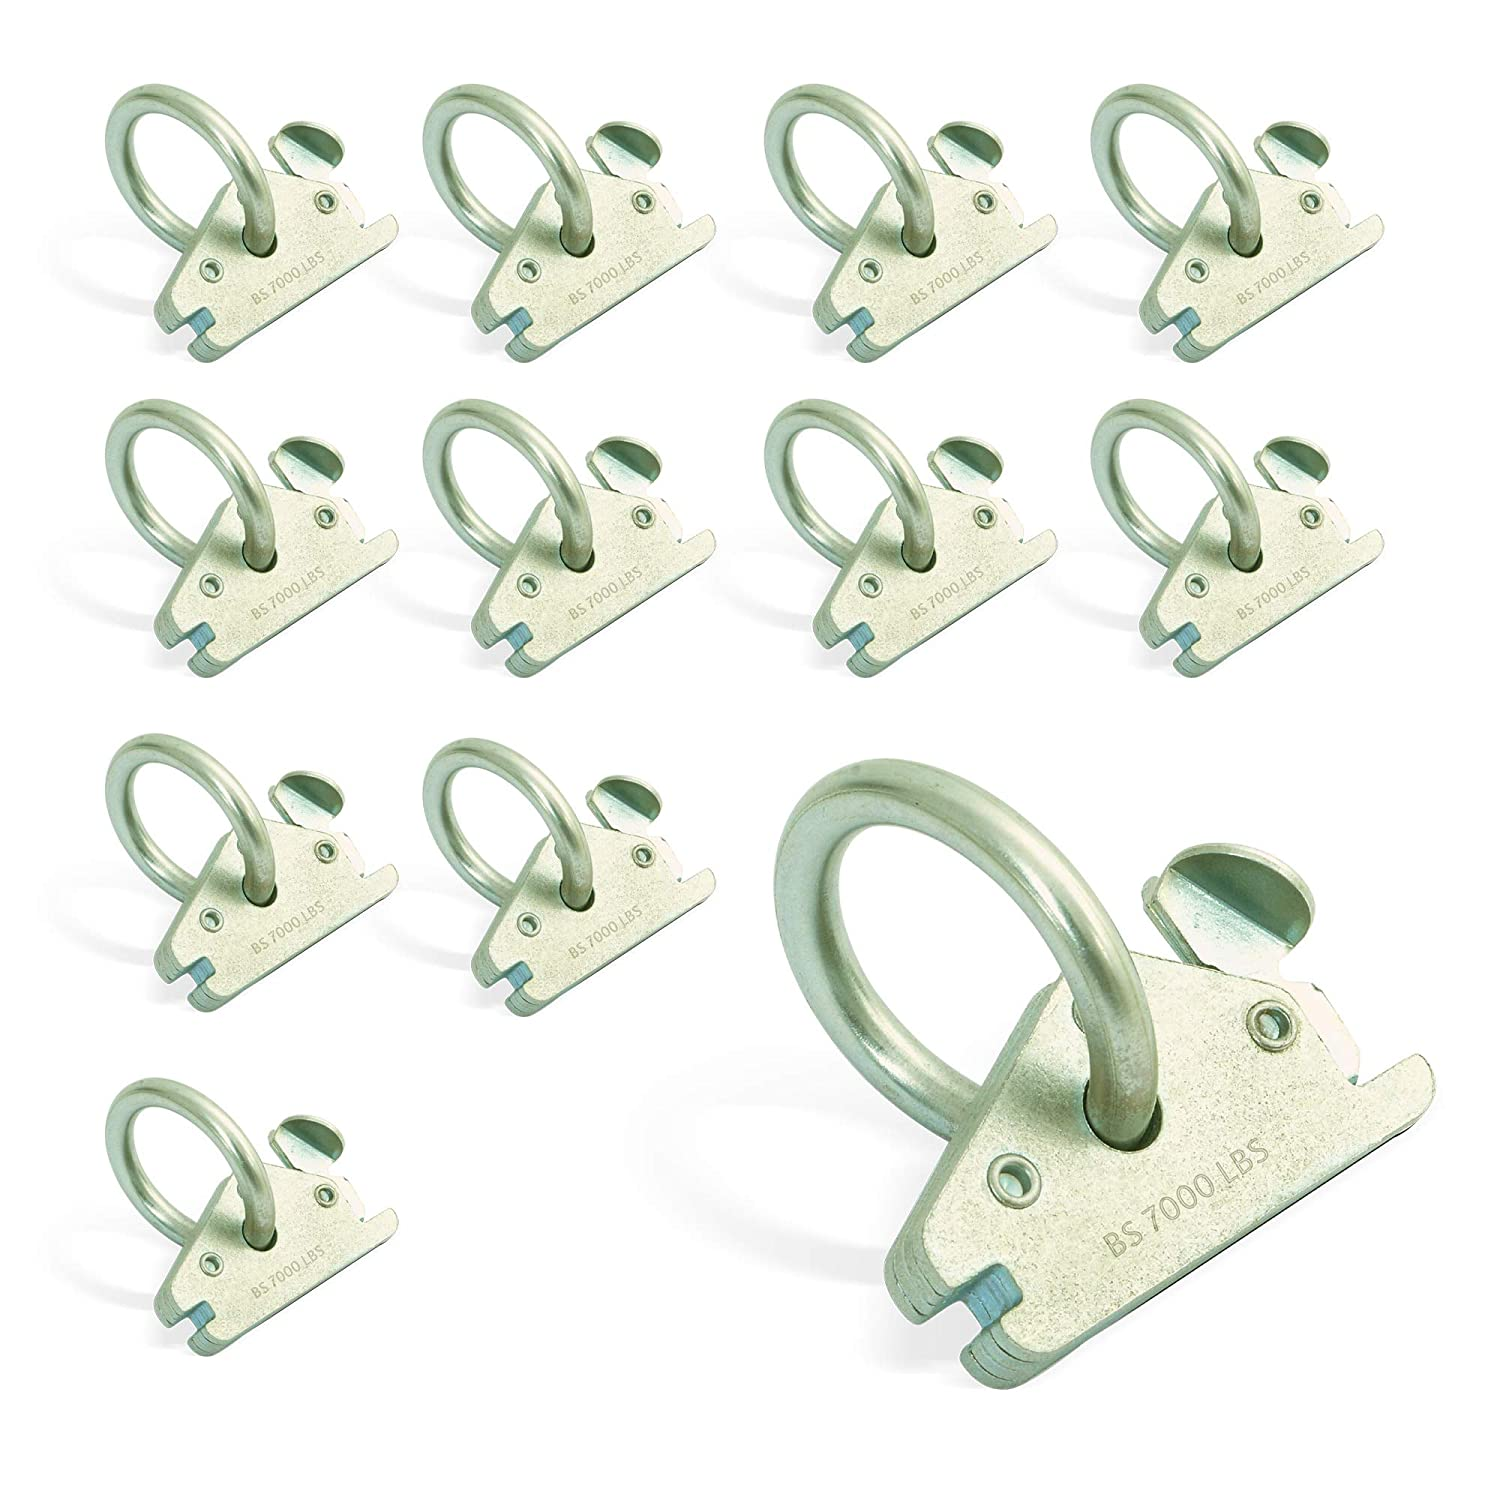 Robust Rustproof E-Tracks Hooks for Ratchet Straps AFA Tooling E Track O Ring Tie Down Anchors 12-Pack Motorcycle Tie Downs /& Equipment 7.000lbs BS Stainless Steel E Track Tie Downs Accessories